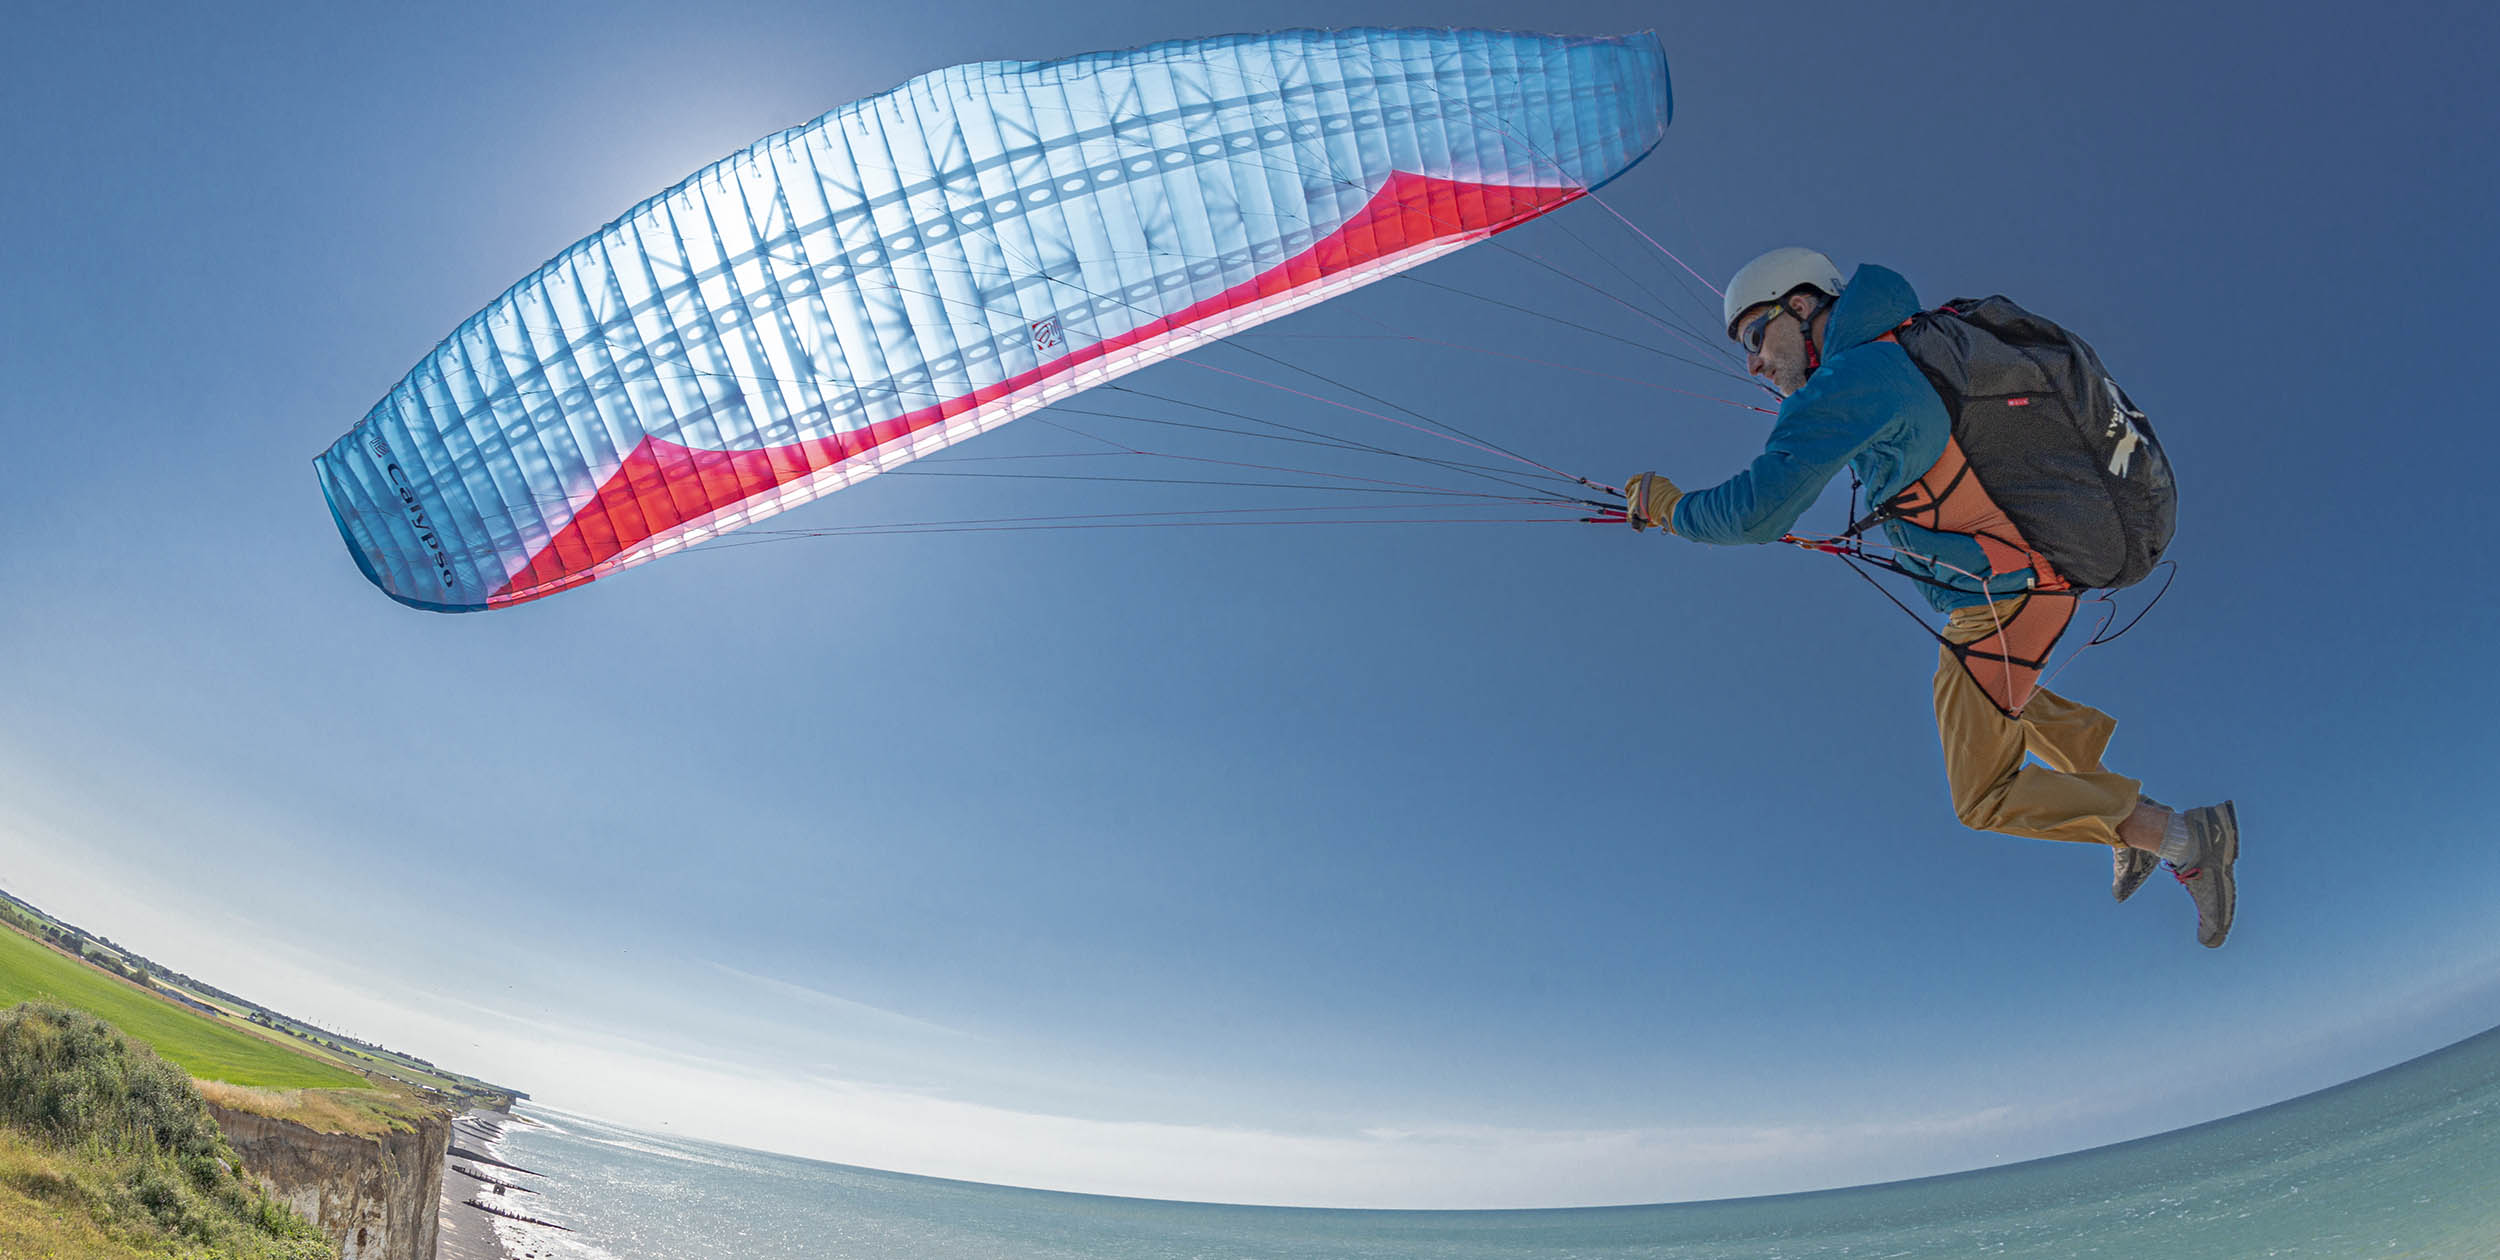 00-Paragliding-Normandy-Jerome-Maupoint-2500